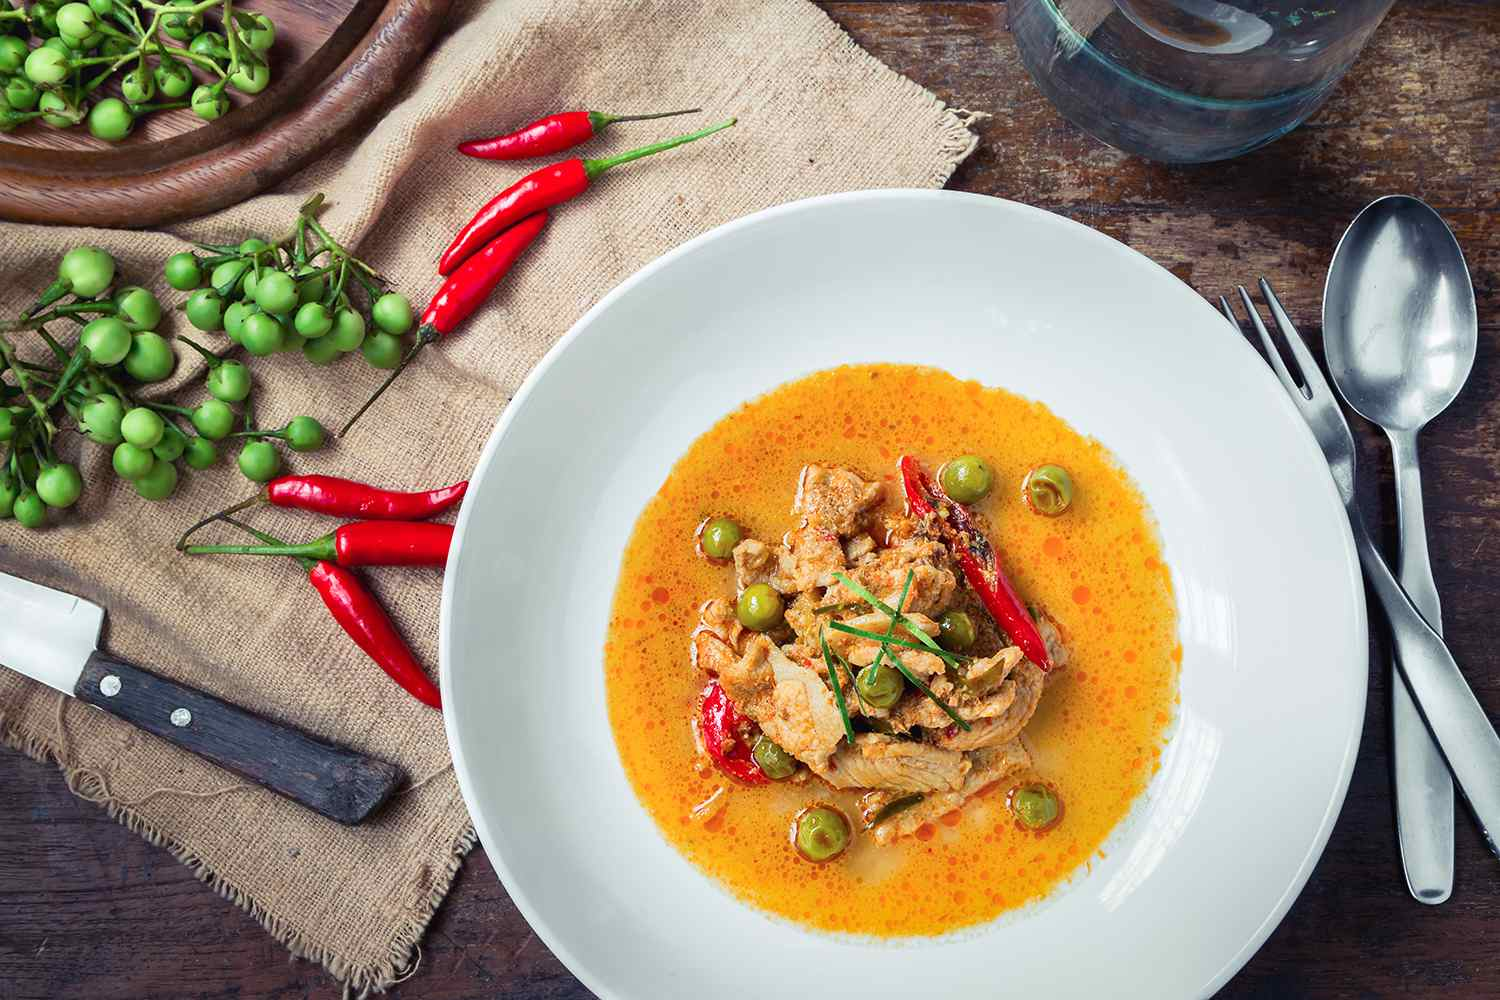 Panang Curry with Pork on wooden table.